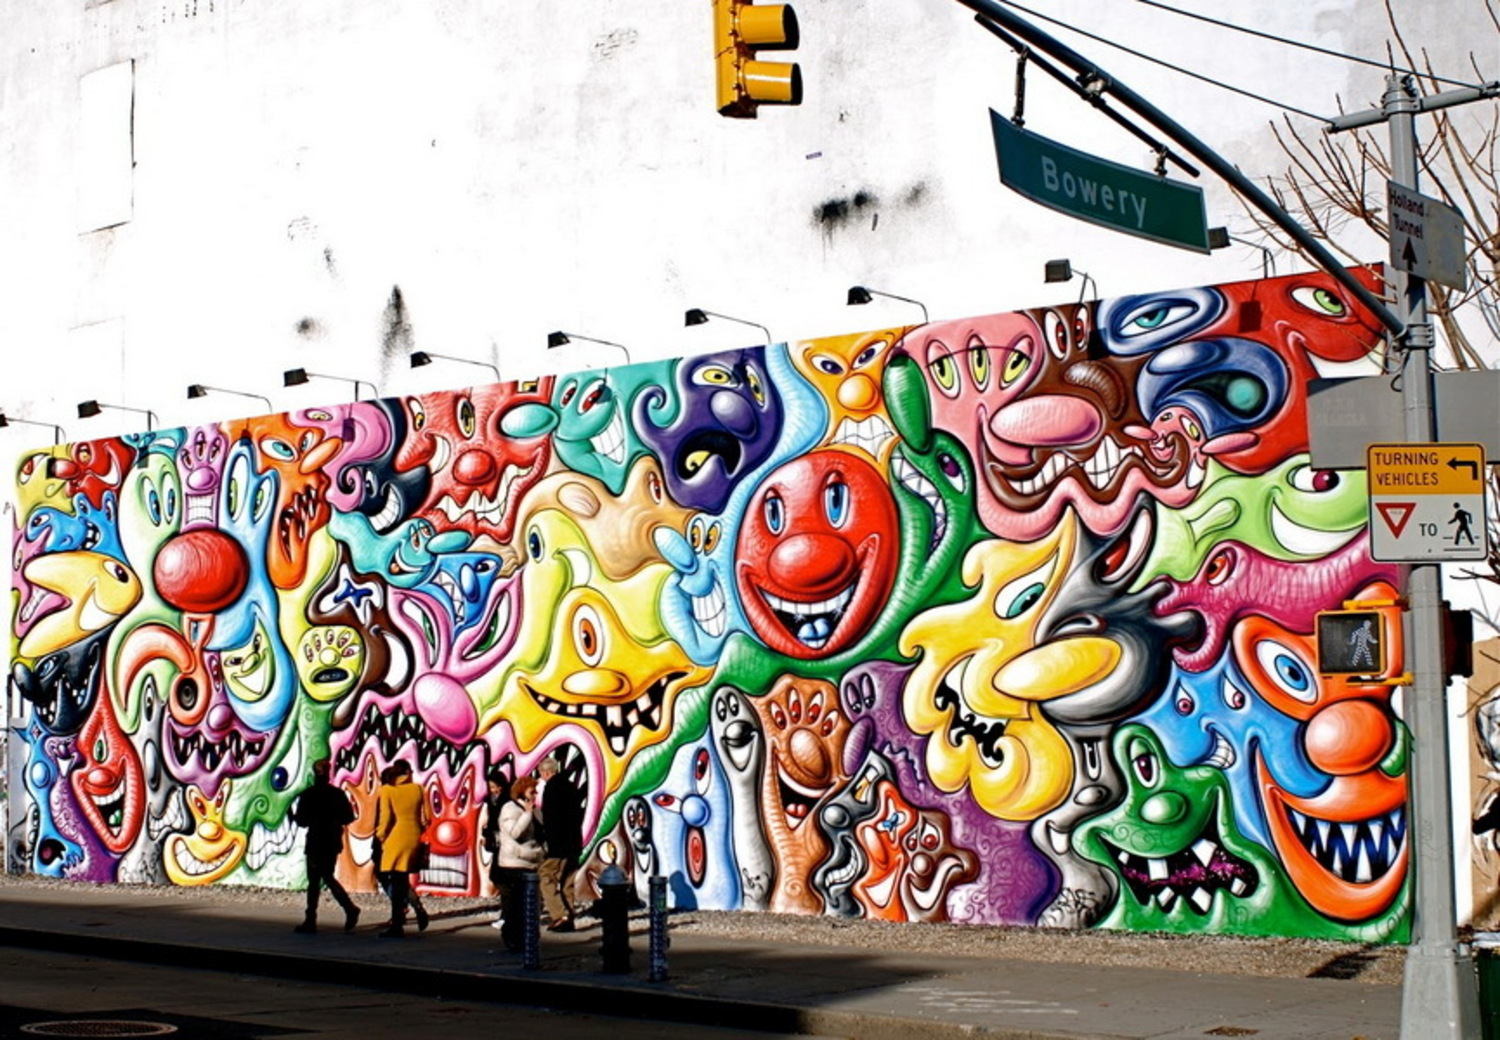 Kenny Scharf - Early Works Influenced by Hanna Barbera Cartoons